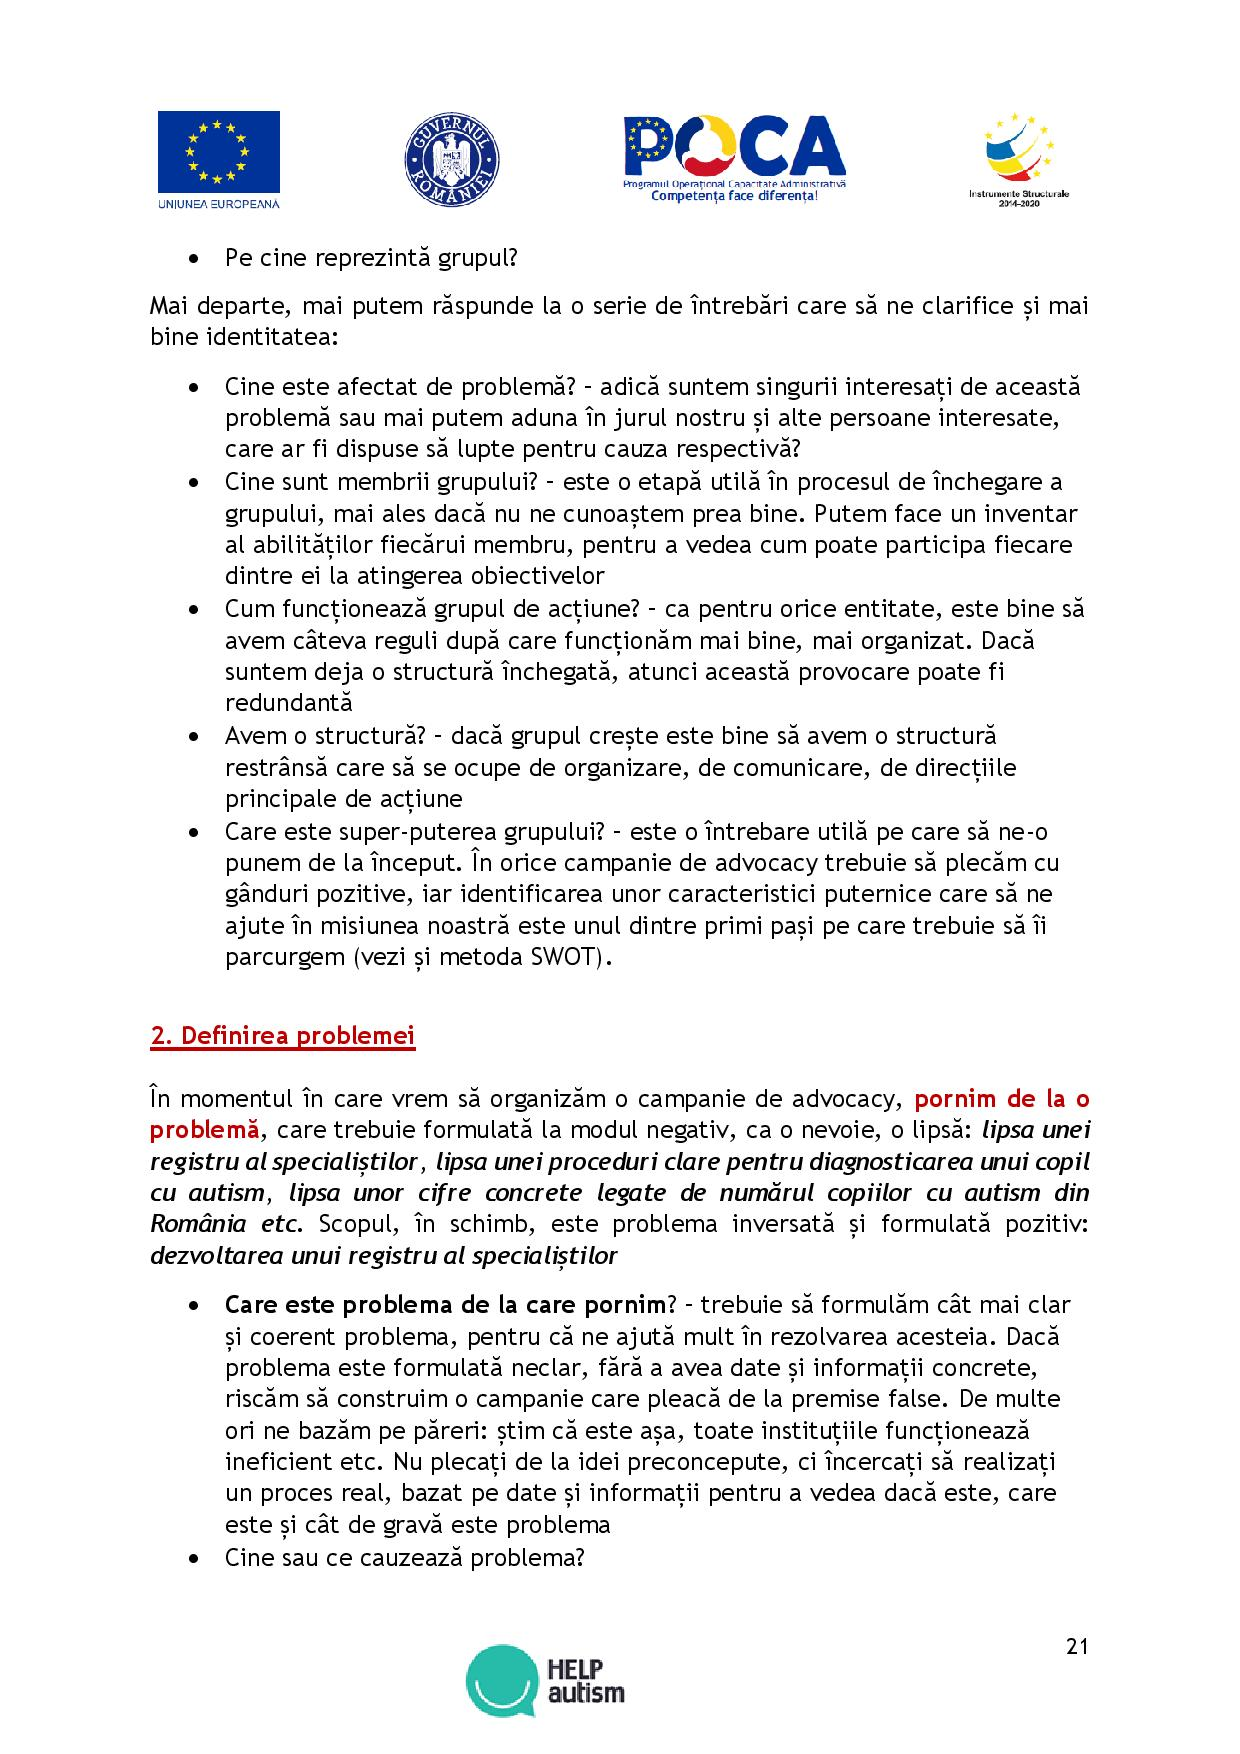 Manual-aug 2019 - incepatori-page-021.jpg